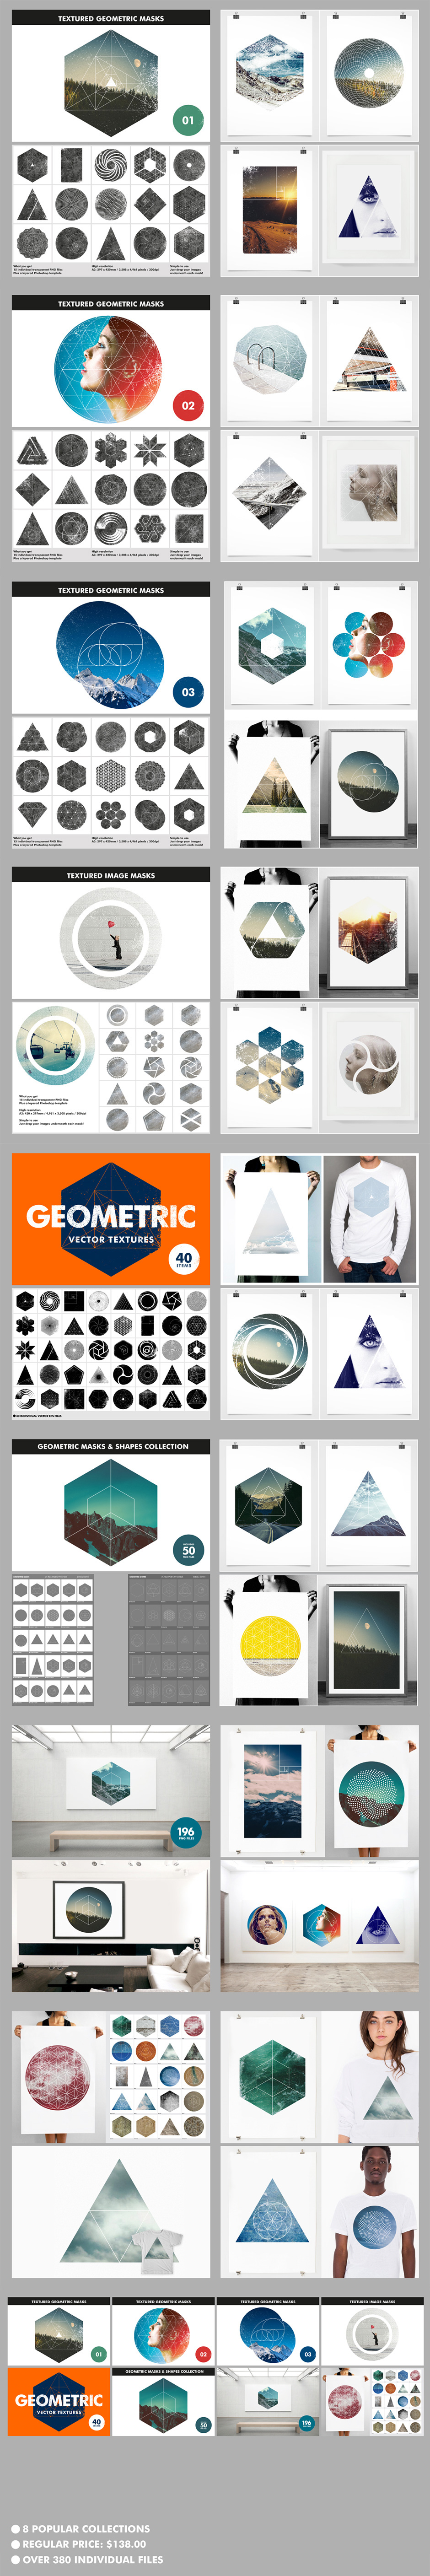 The Ultimate Geometric Collection